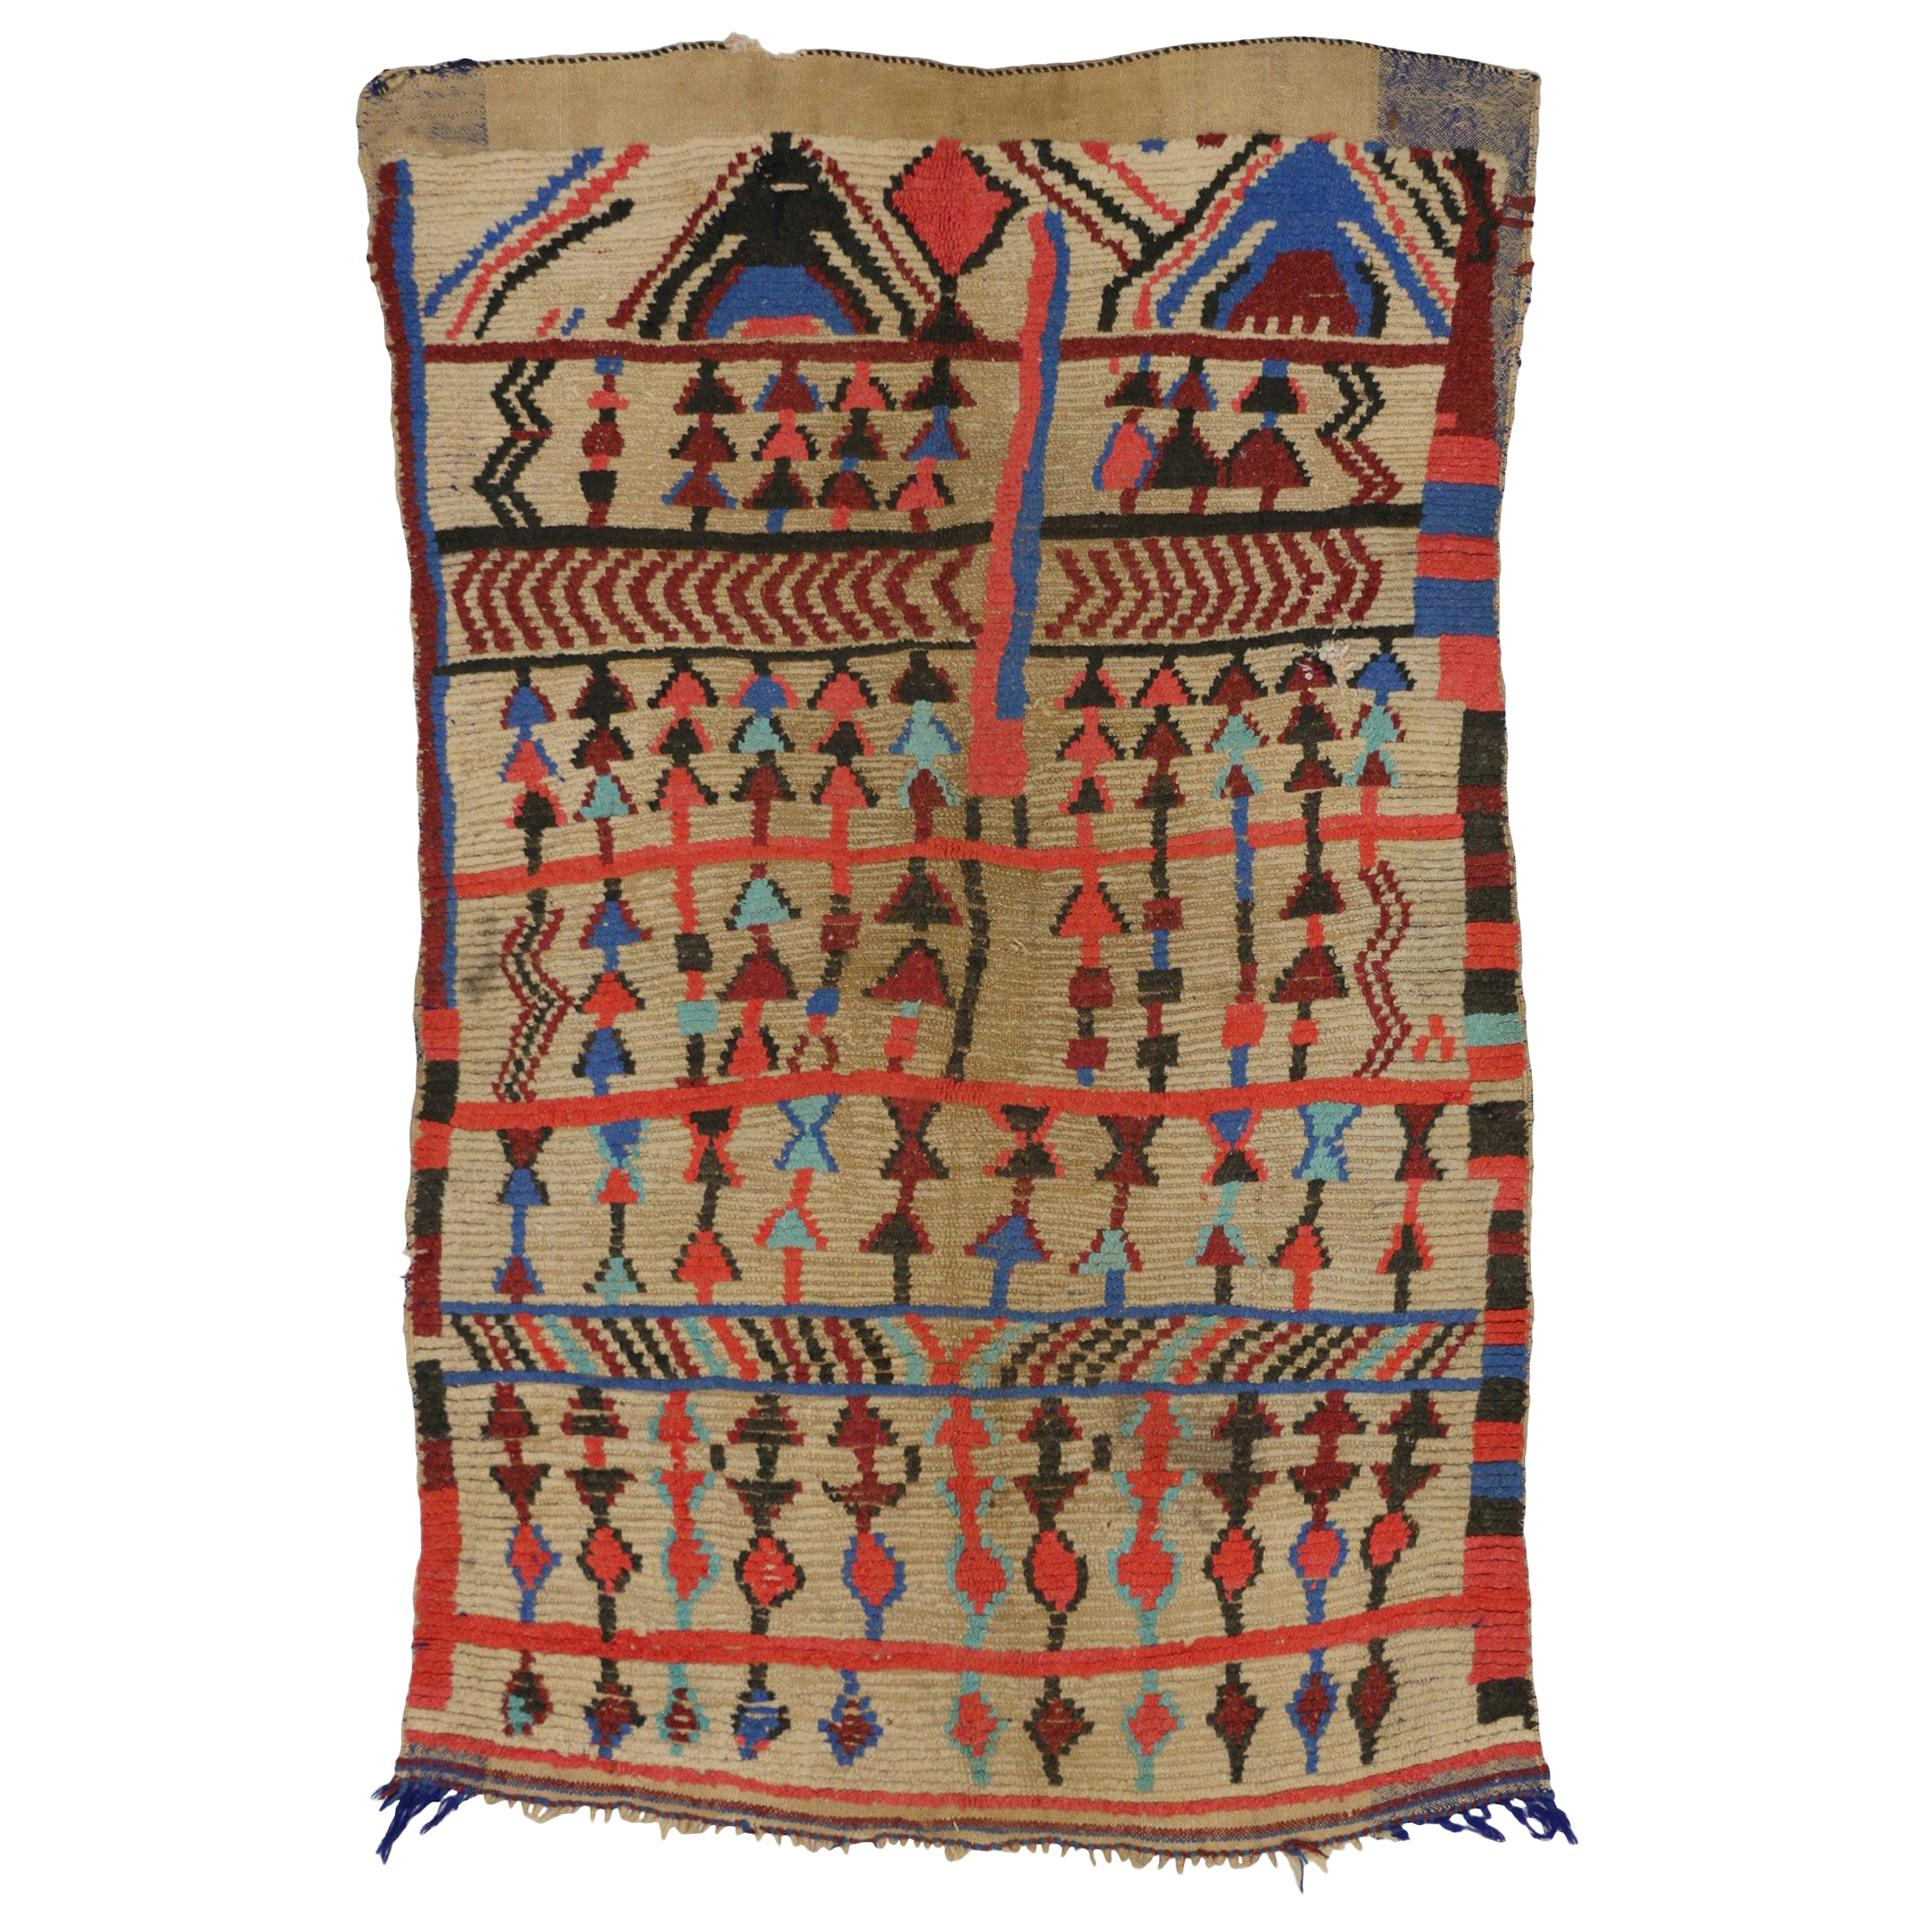 Vintage Berber Moroccan Rug in Tribal Style, Accent Tribal Rug